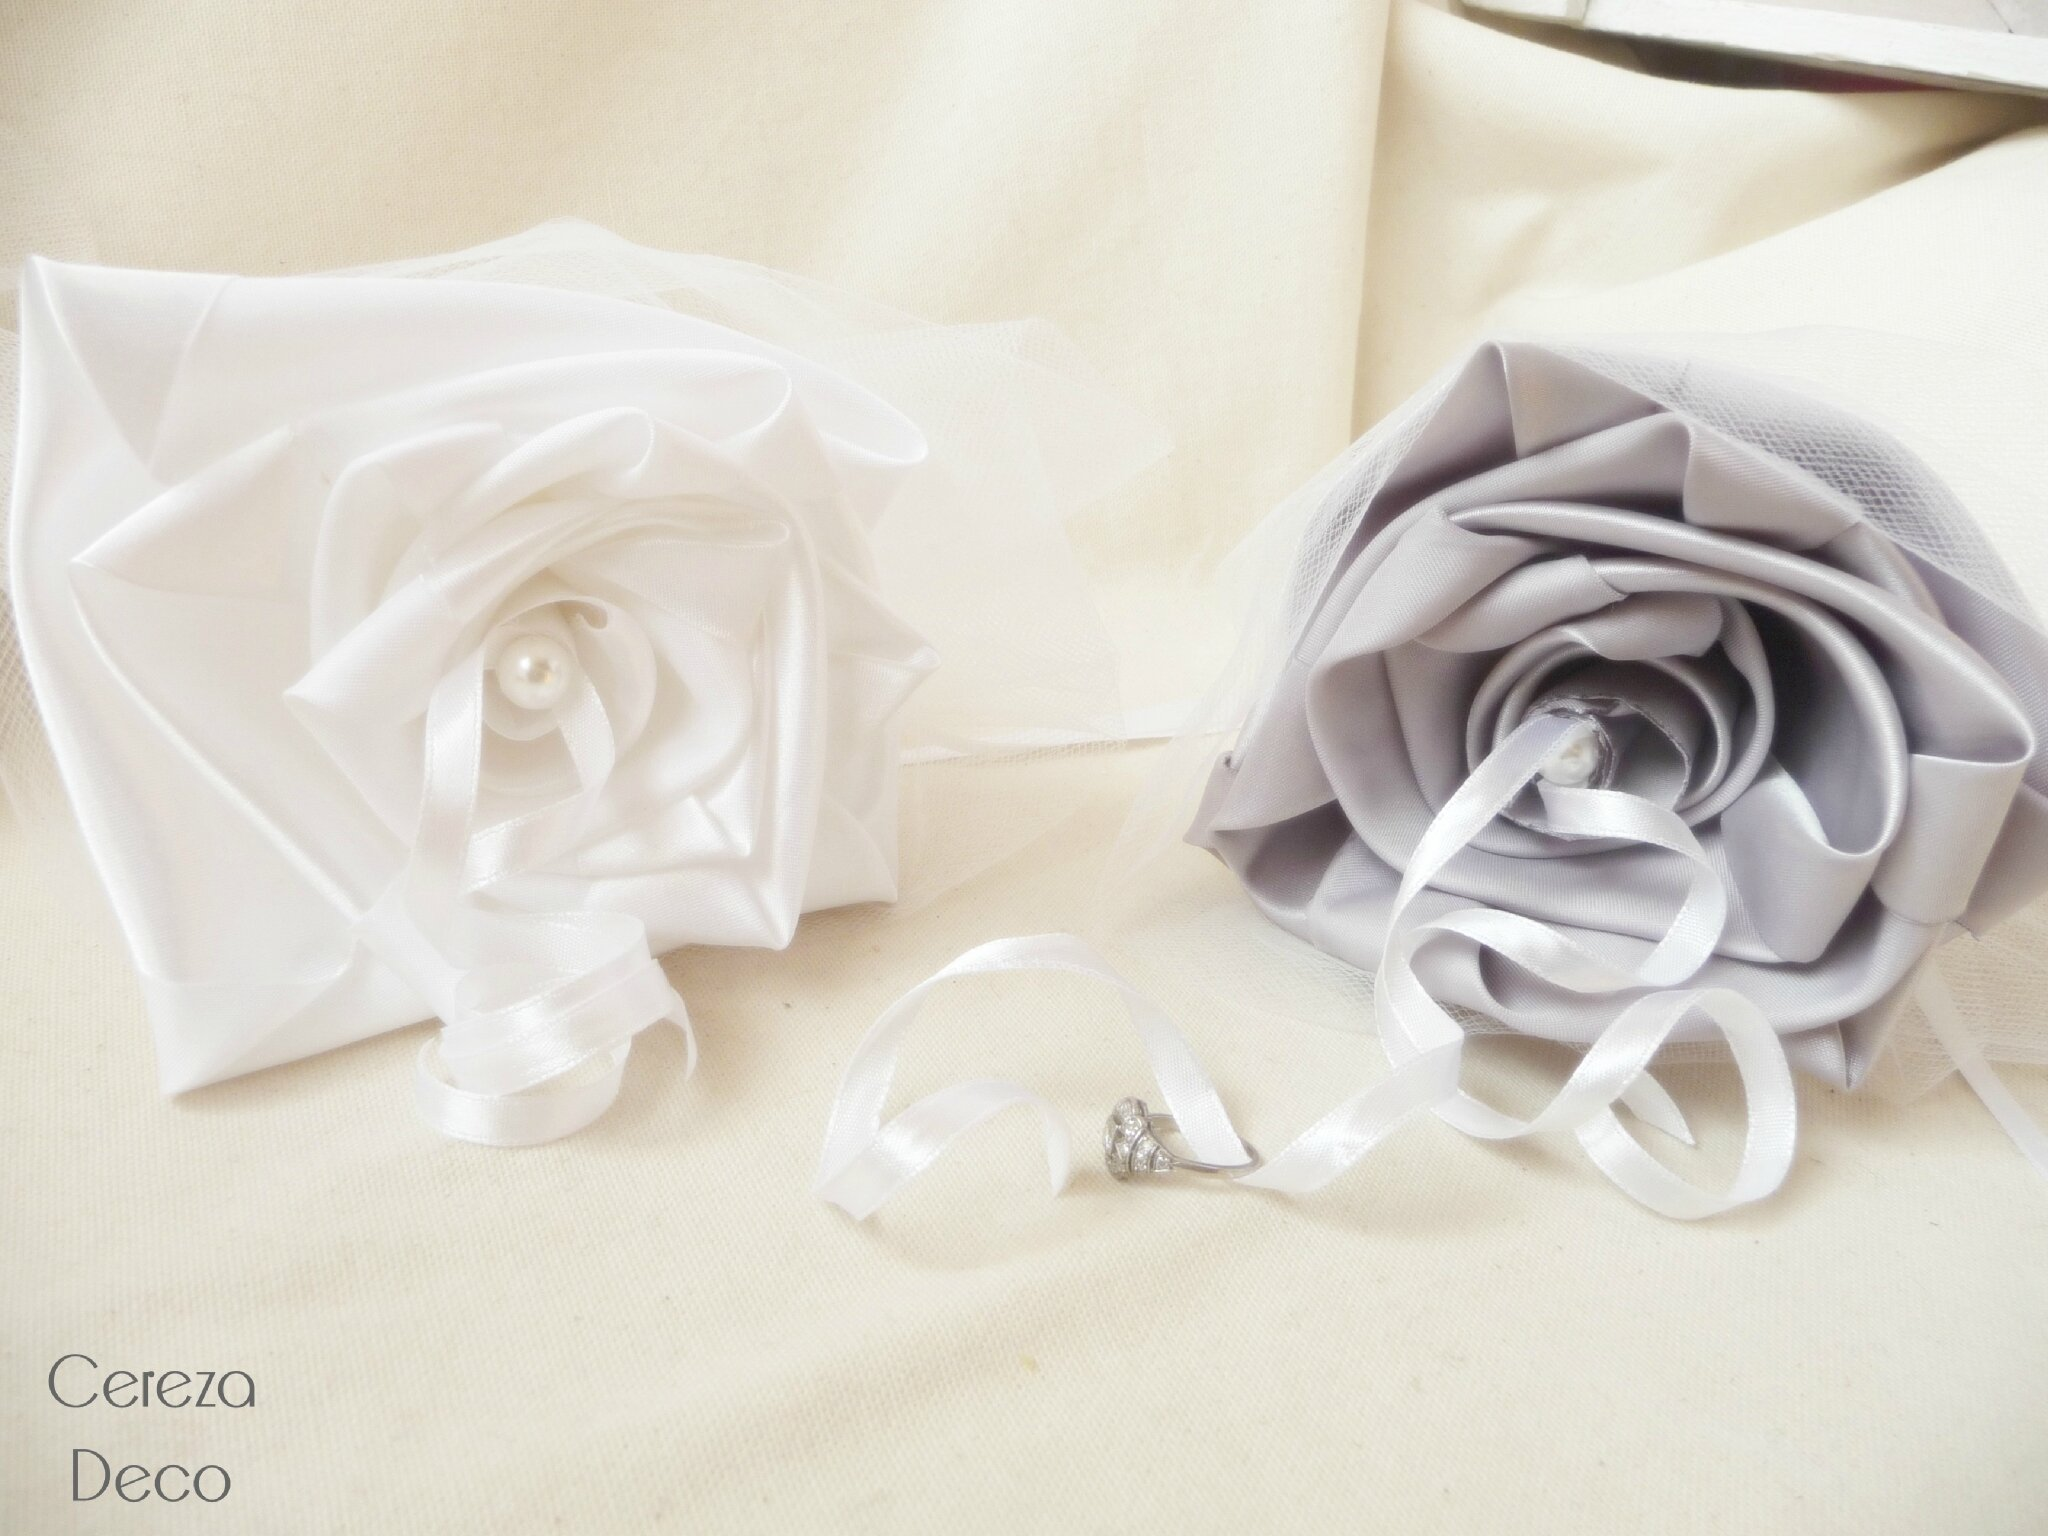 ... alliance original - Cereza latelier du bouquet de mariage original